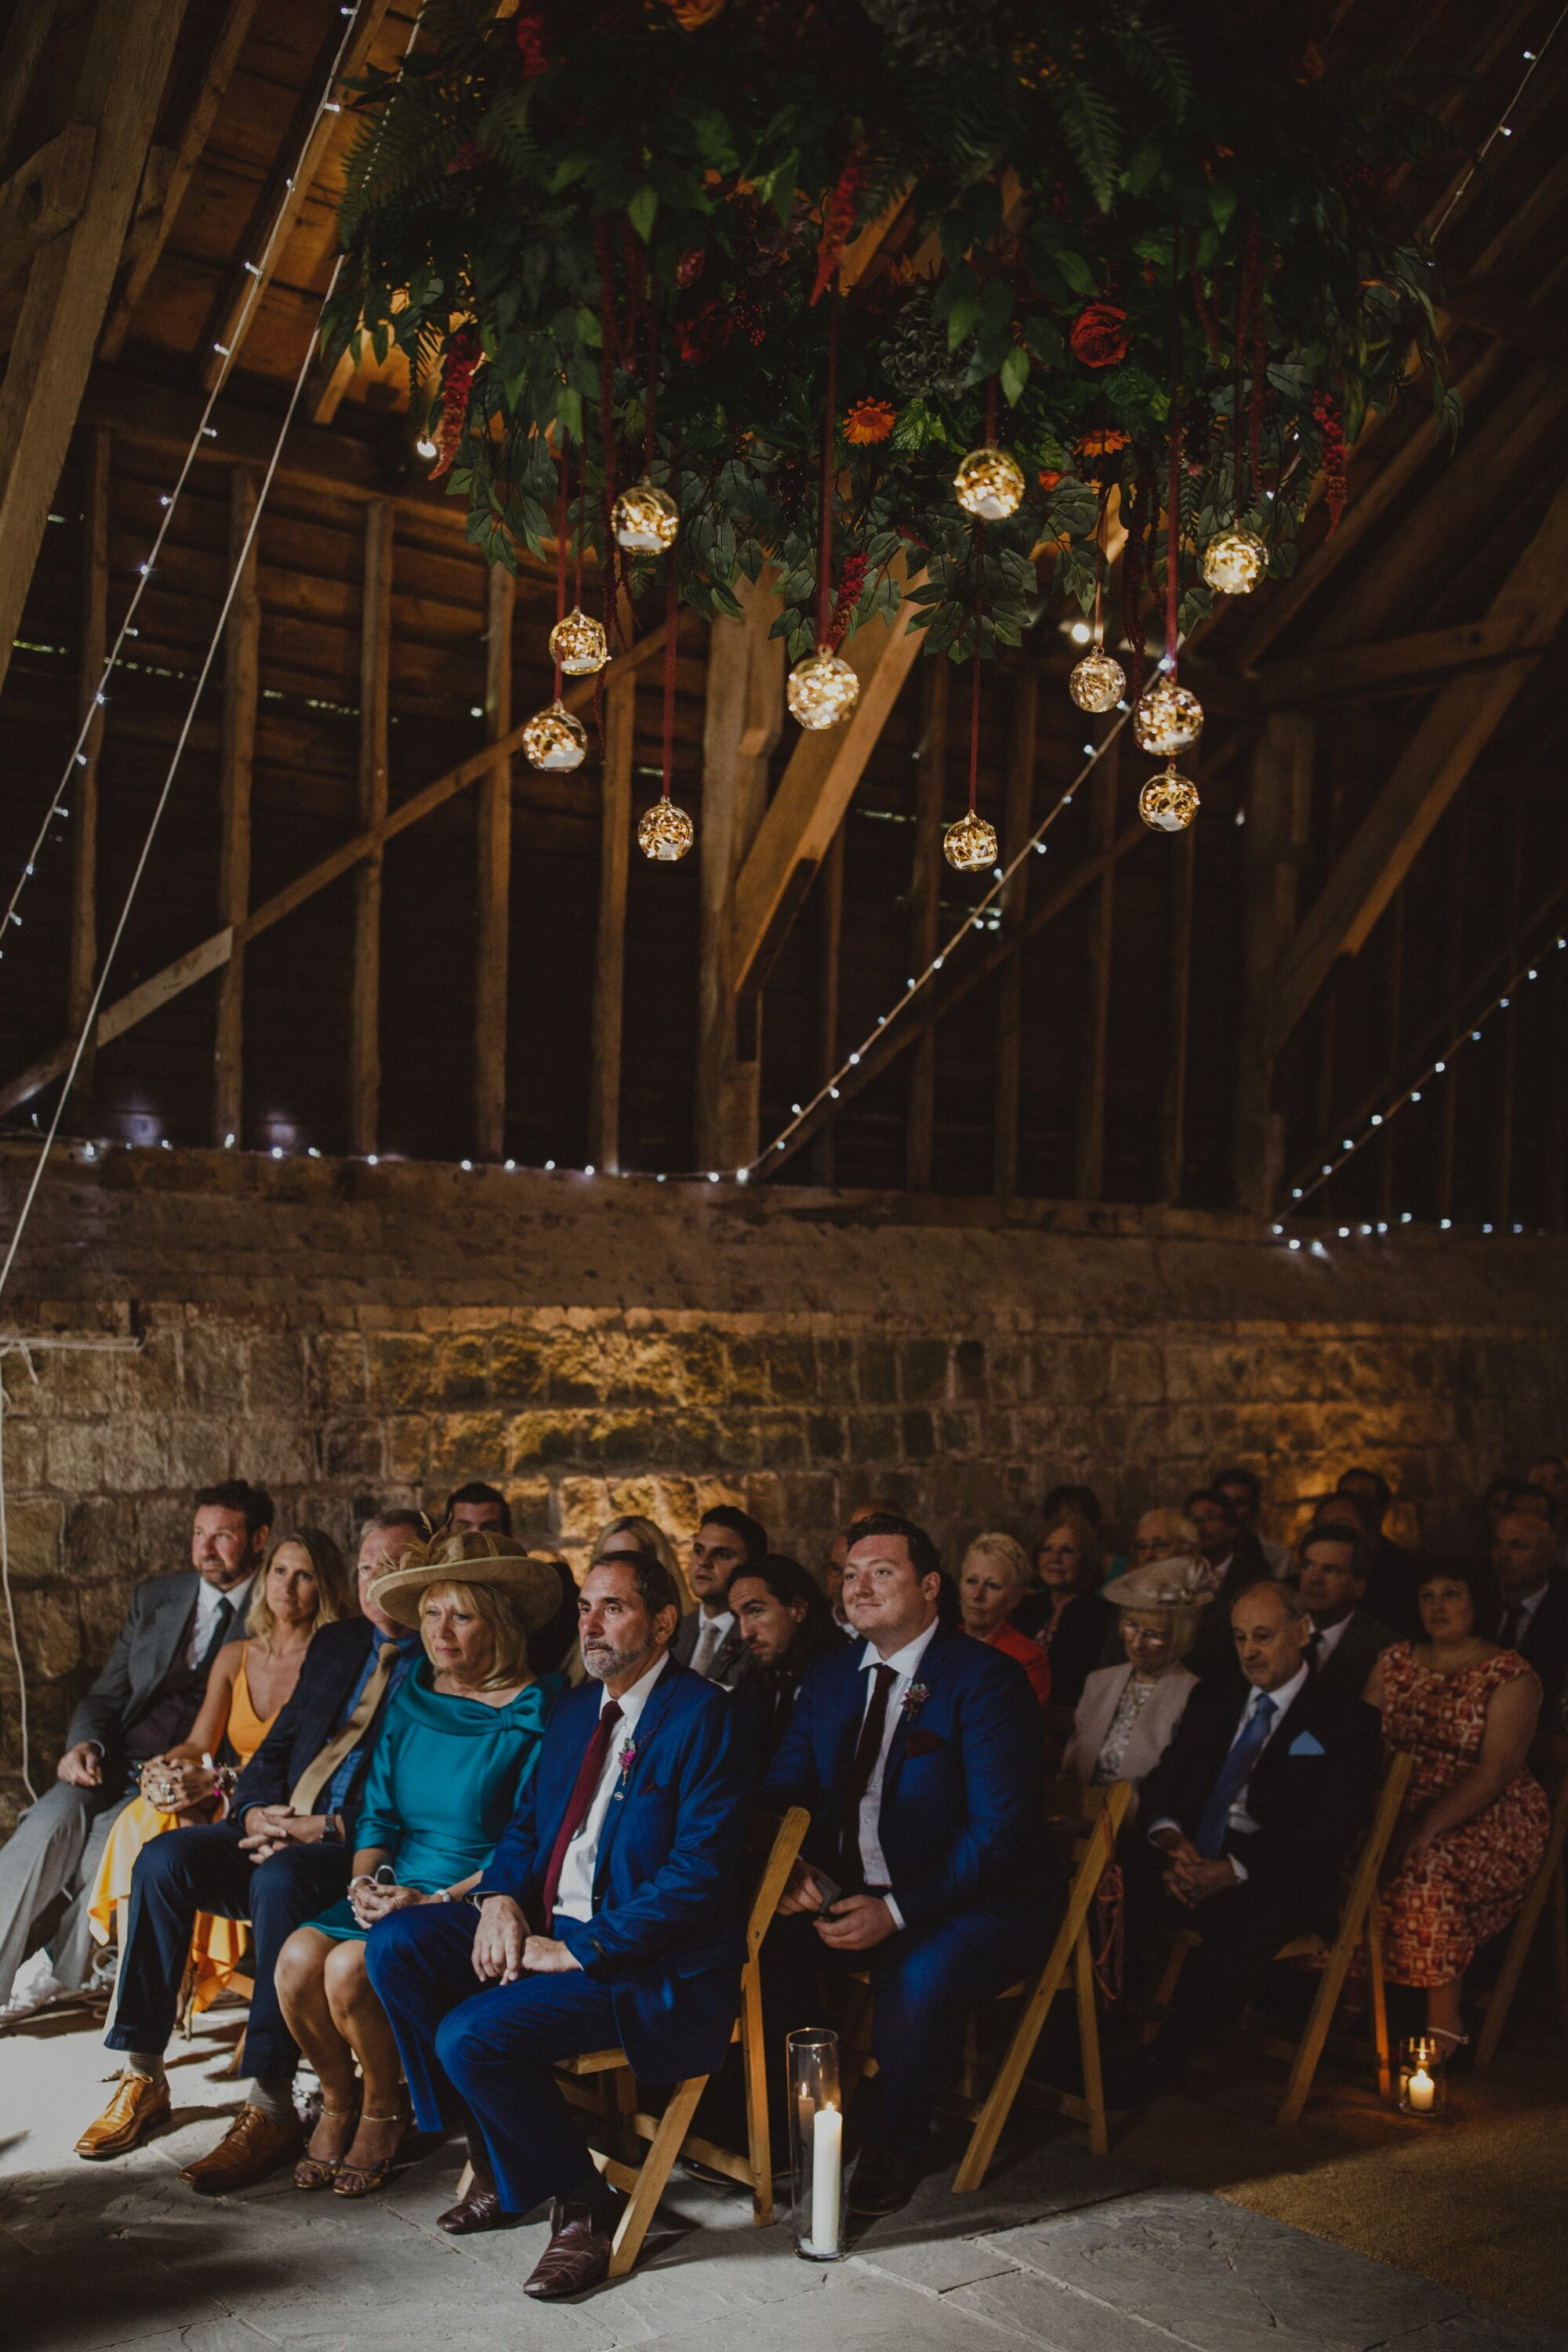 wick-bottom-barn-wedding_0080.jpg